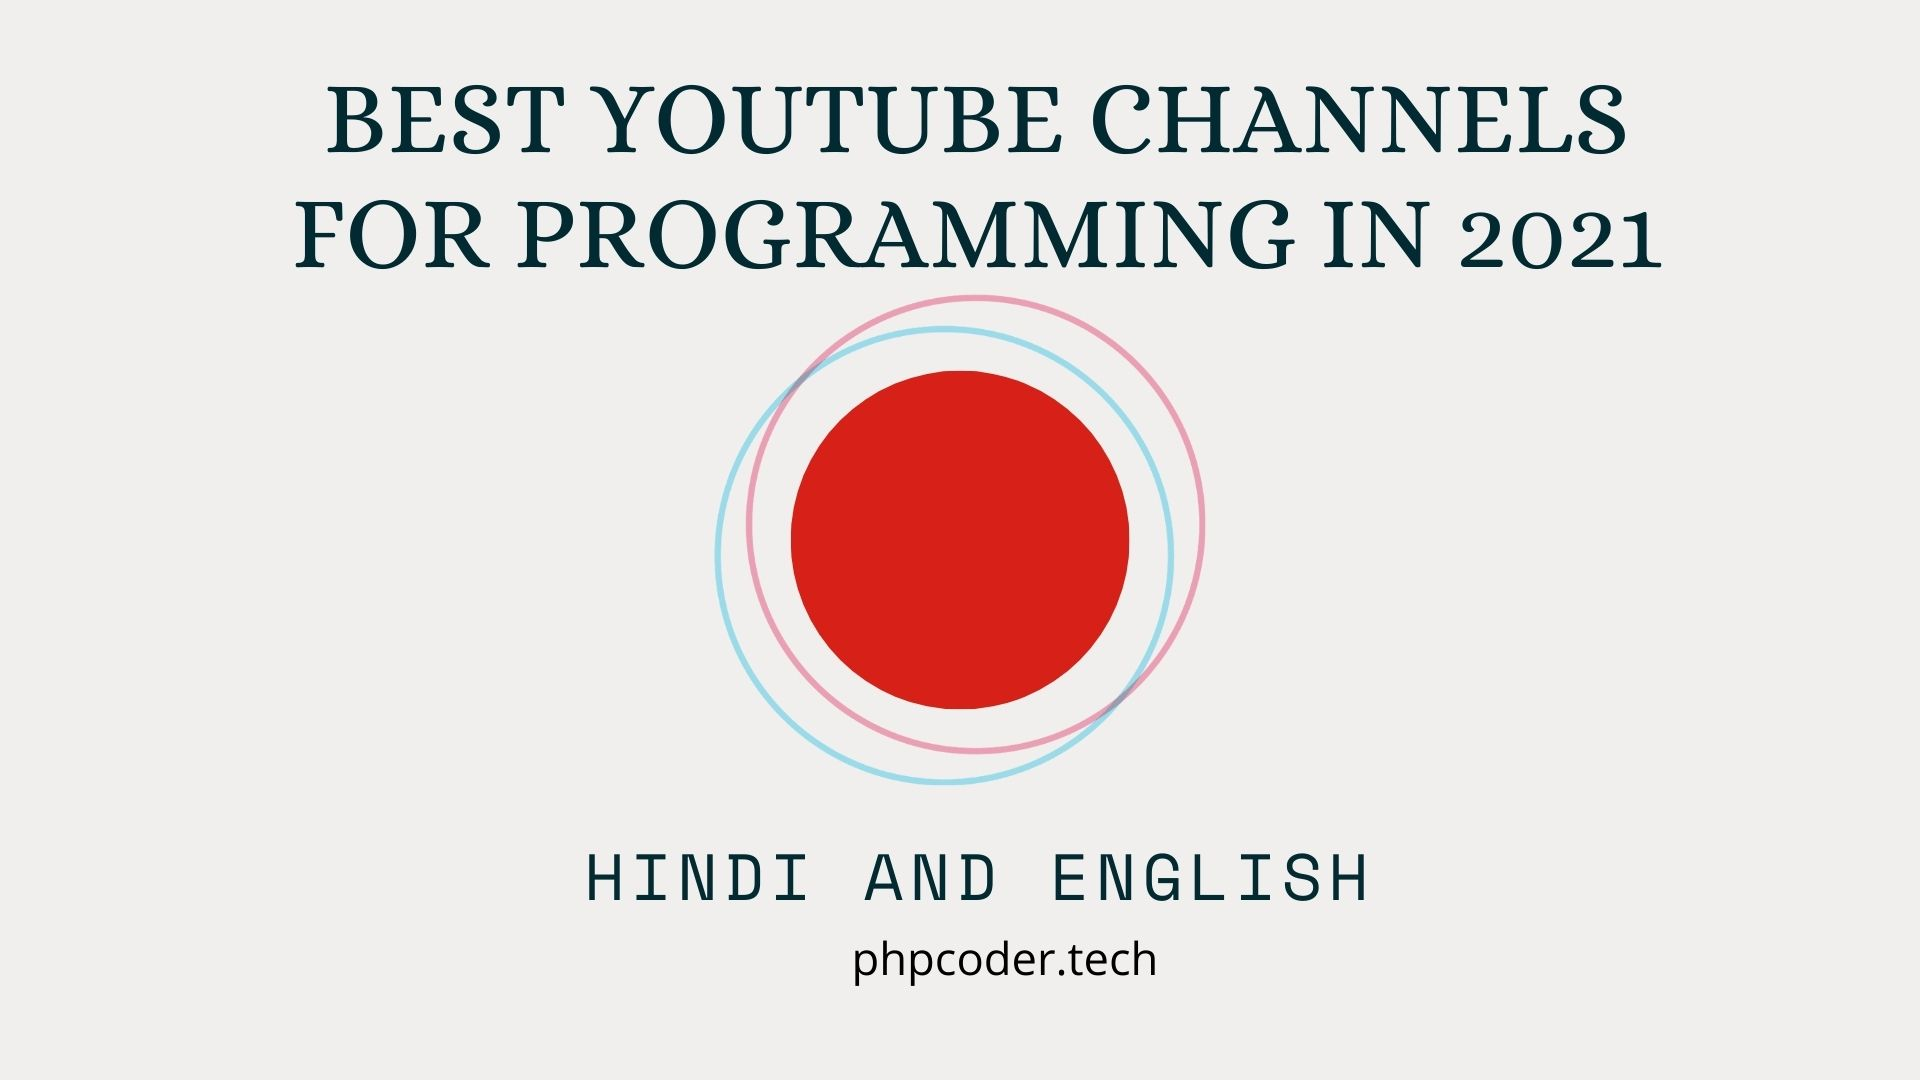 Best YouTube Channels For Programming in 2021 - PHPCODER.TECH